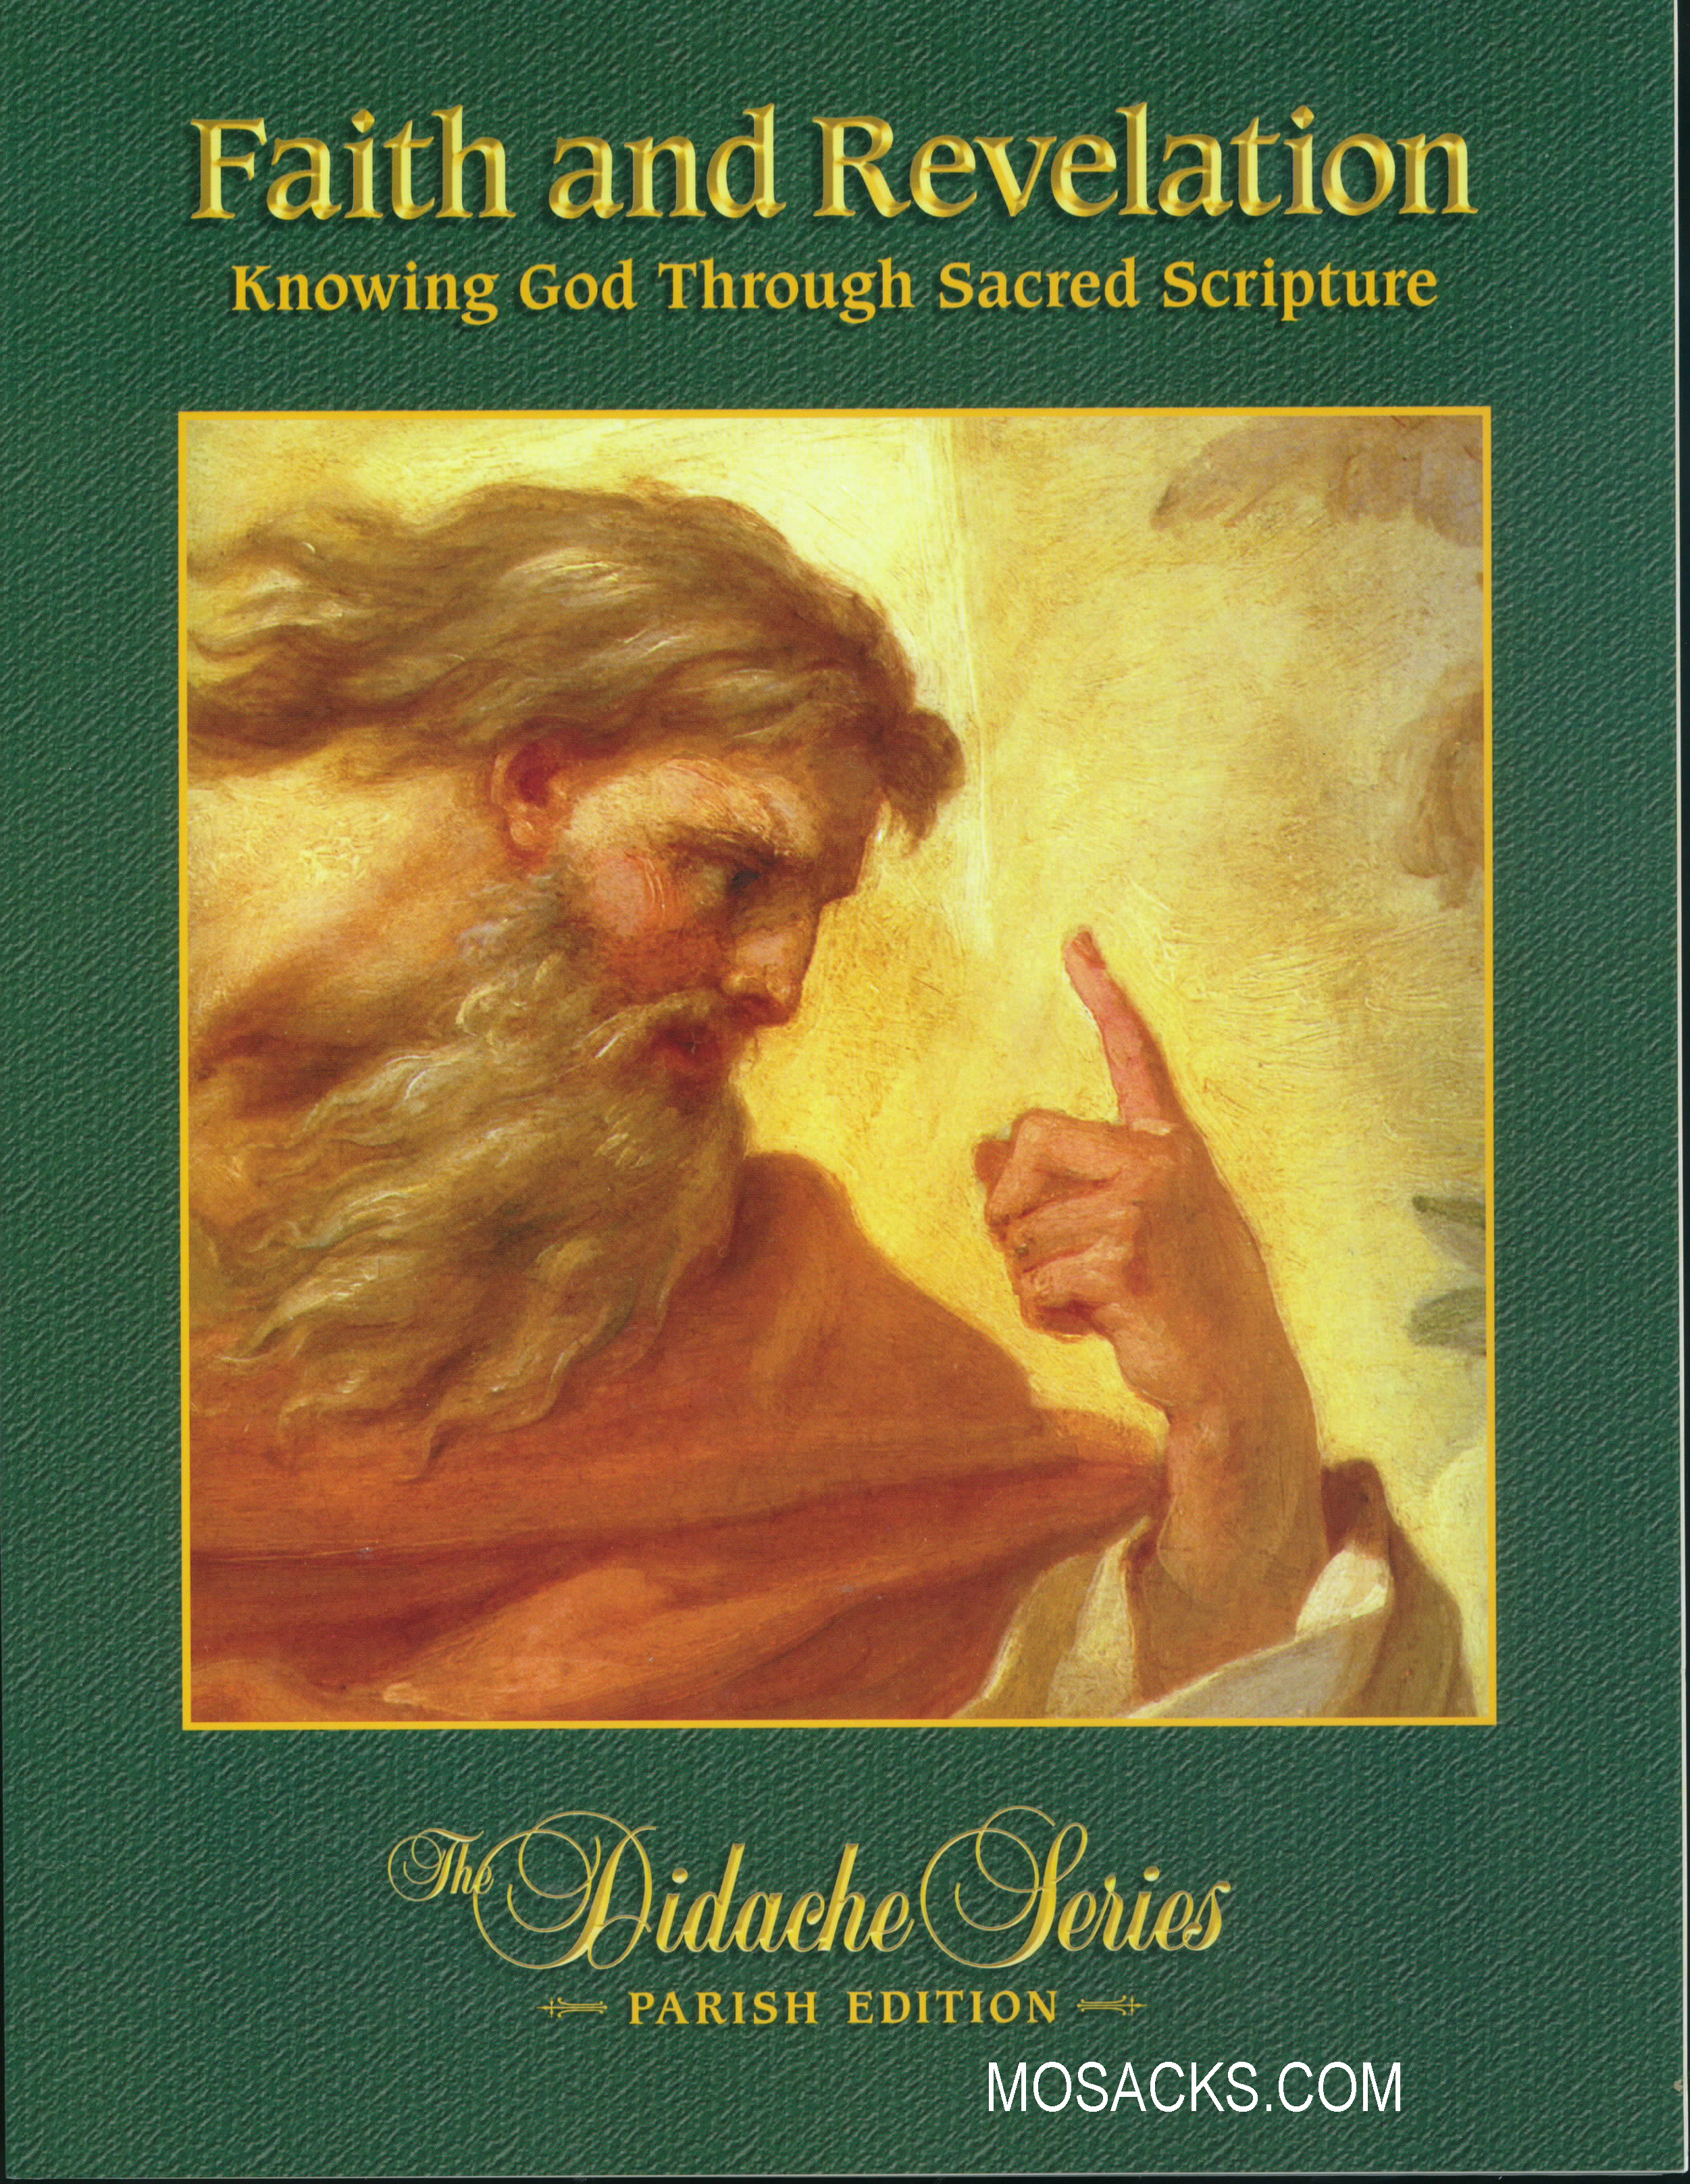 Didache Series Faith and Revelation Parish Edition by Dr. Scott Hahn 45808